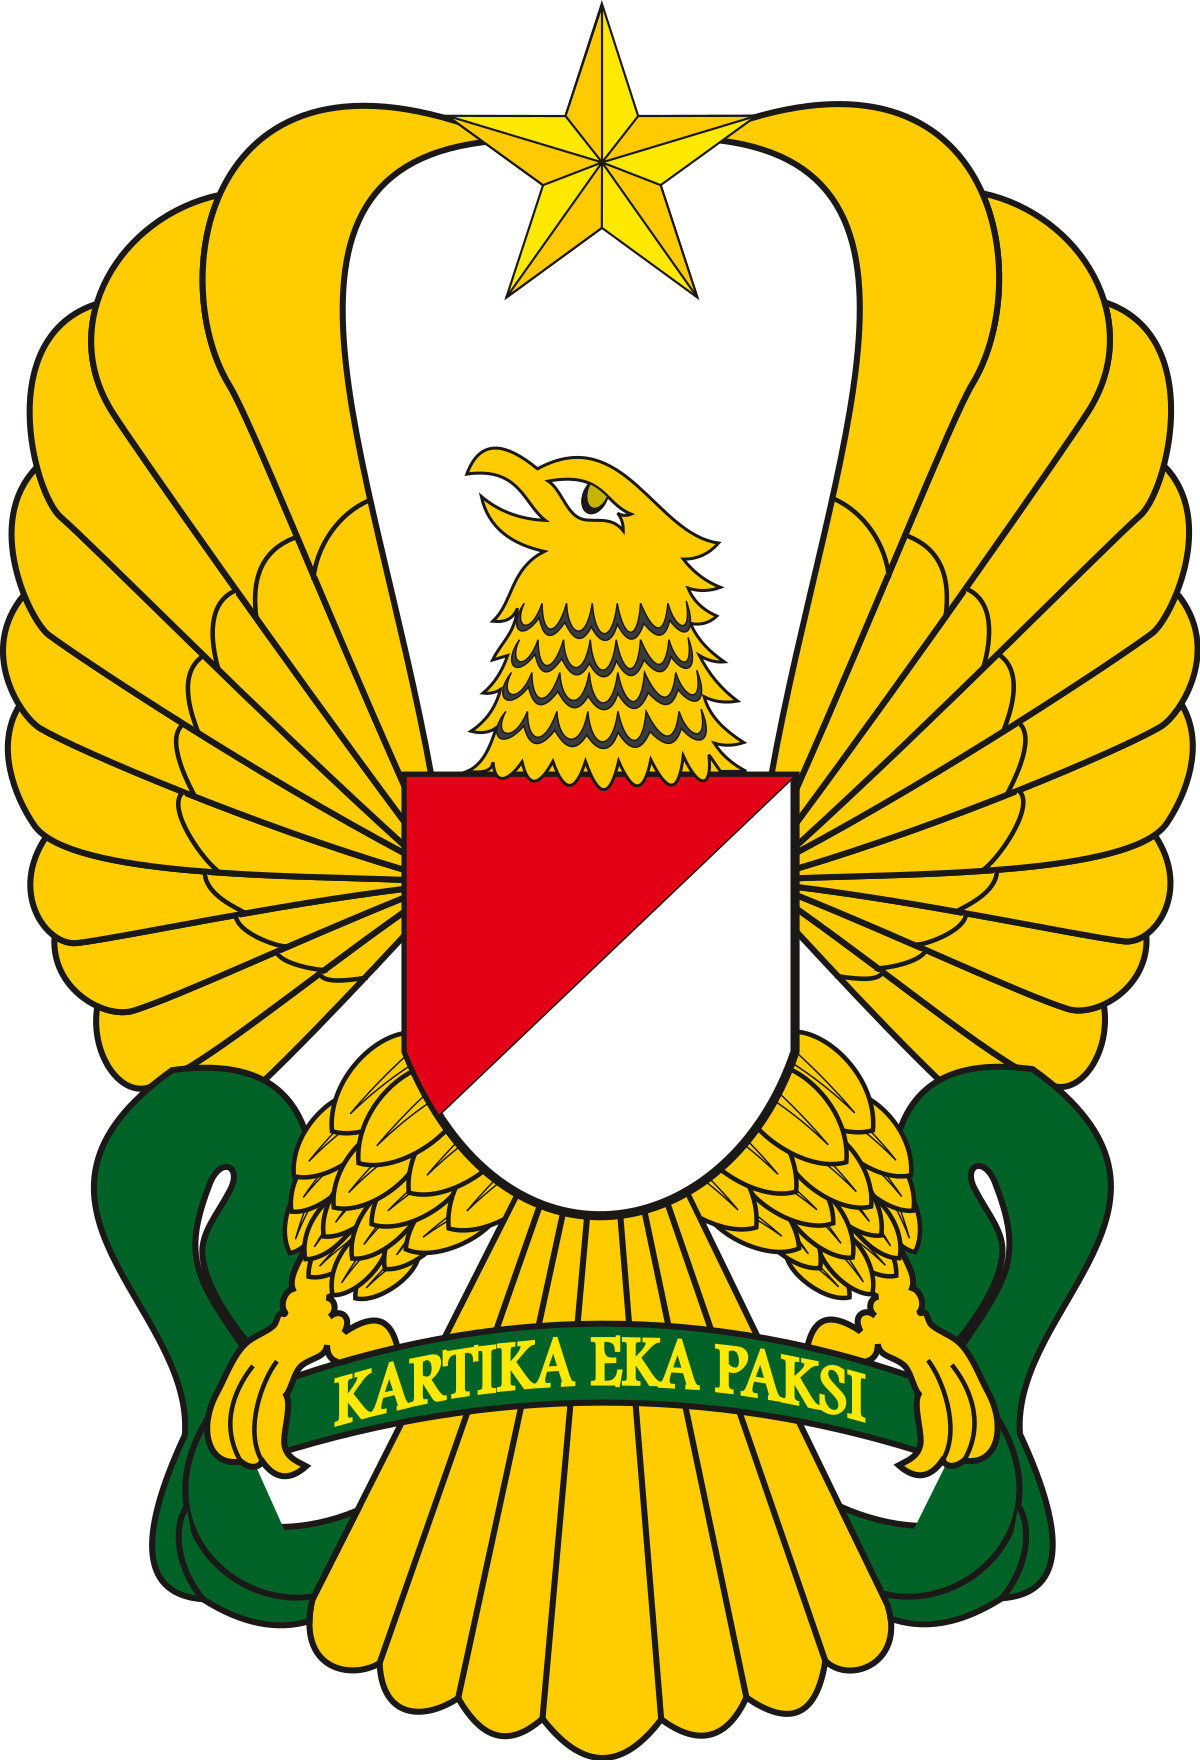 Brave clipart soldier israeli. Indonesian army wikipedia